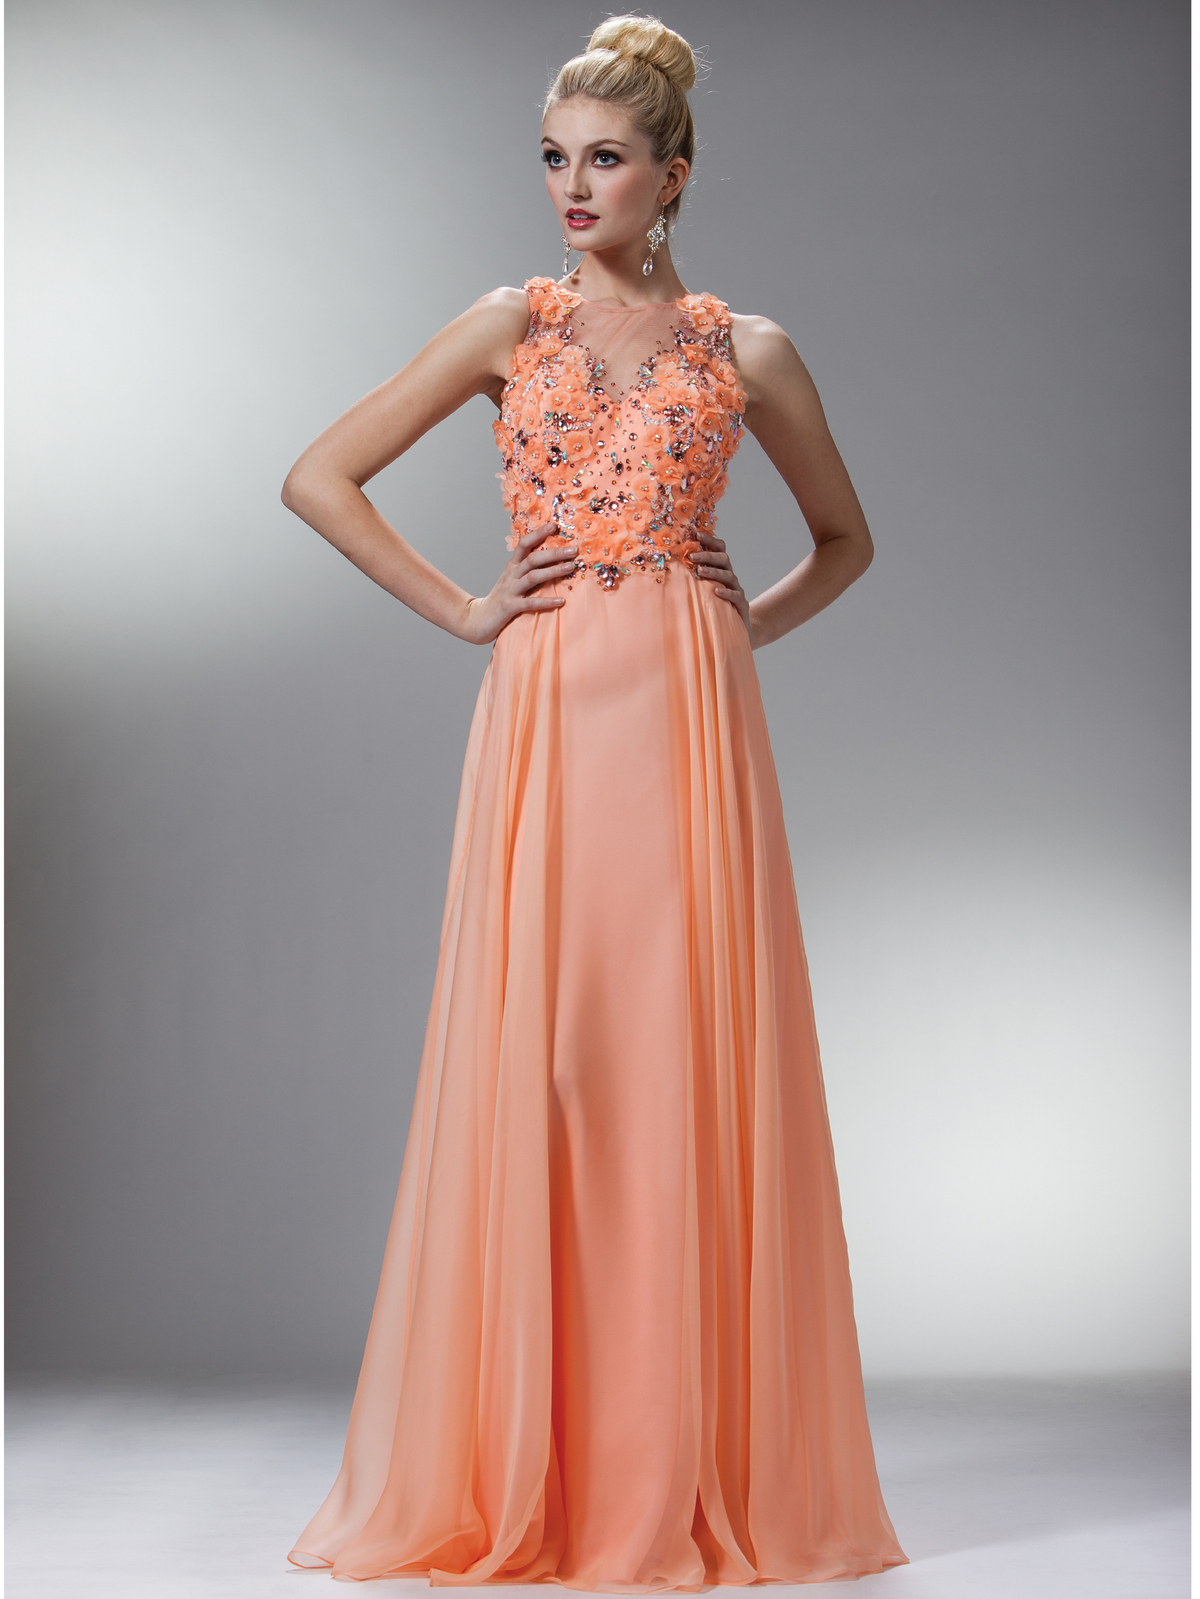 Light Coral Dainty Draping Evening Dress | Sung Boutique L.A.